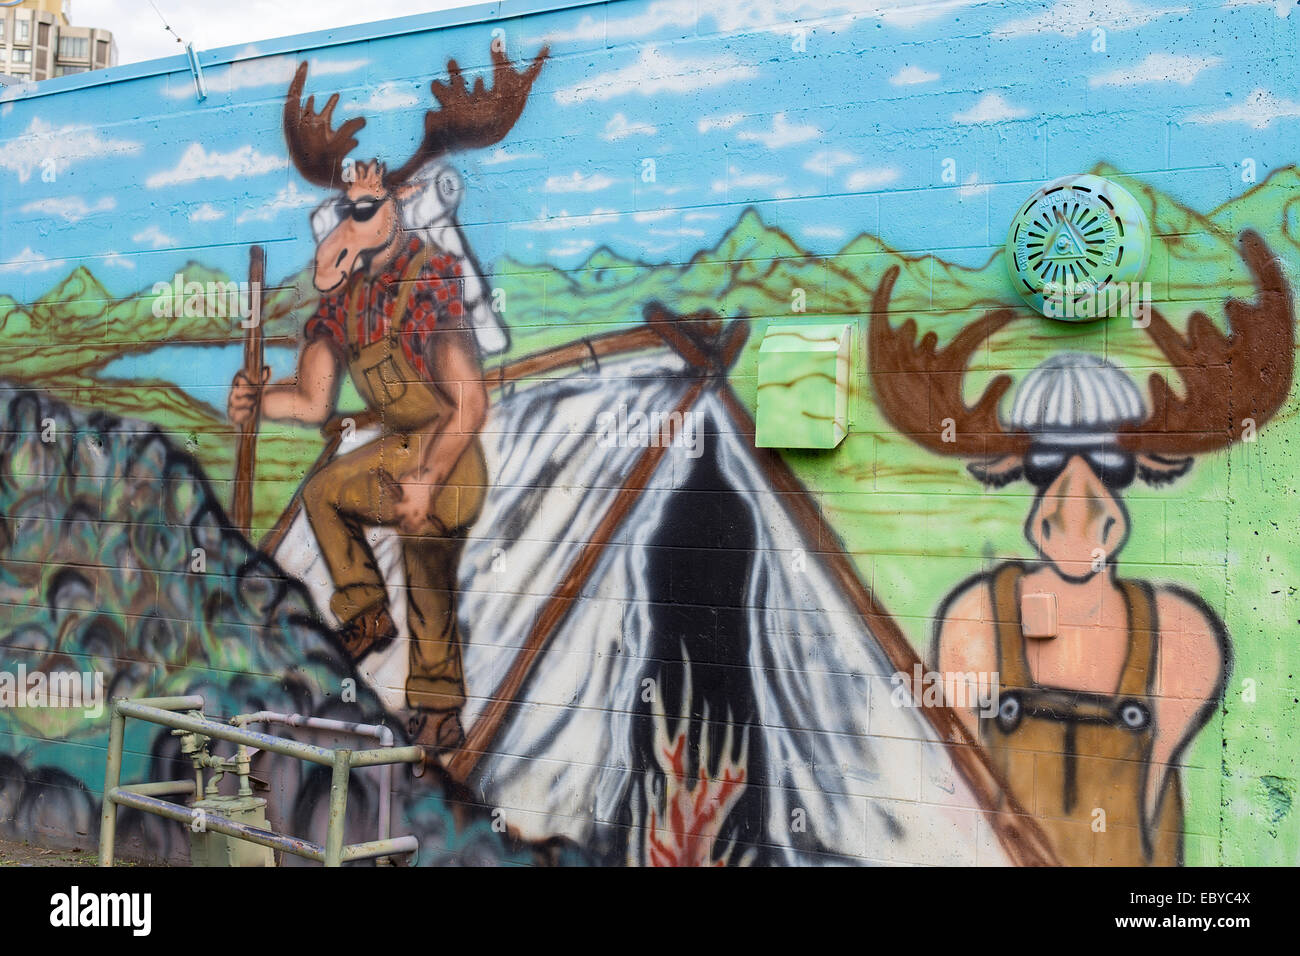 Color art anchorage - A Mural On A Wall In Anchorage Alaska Usa